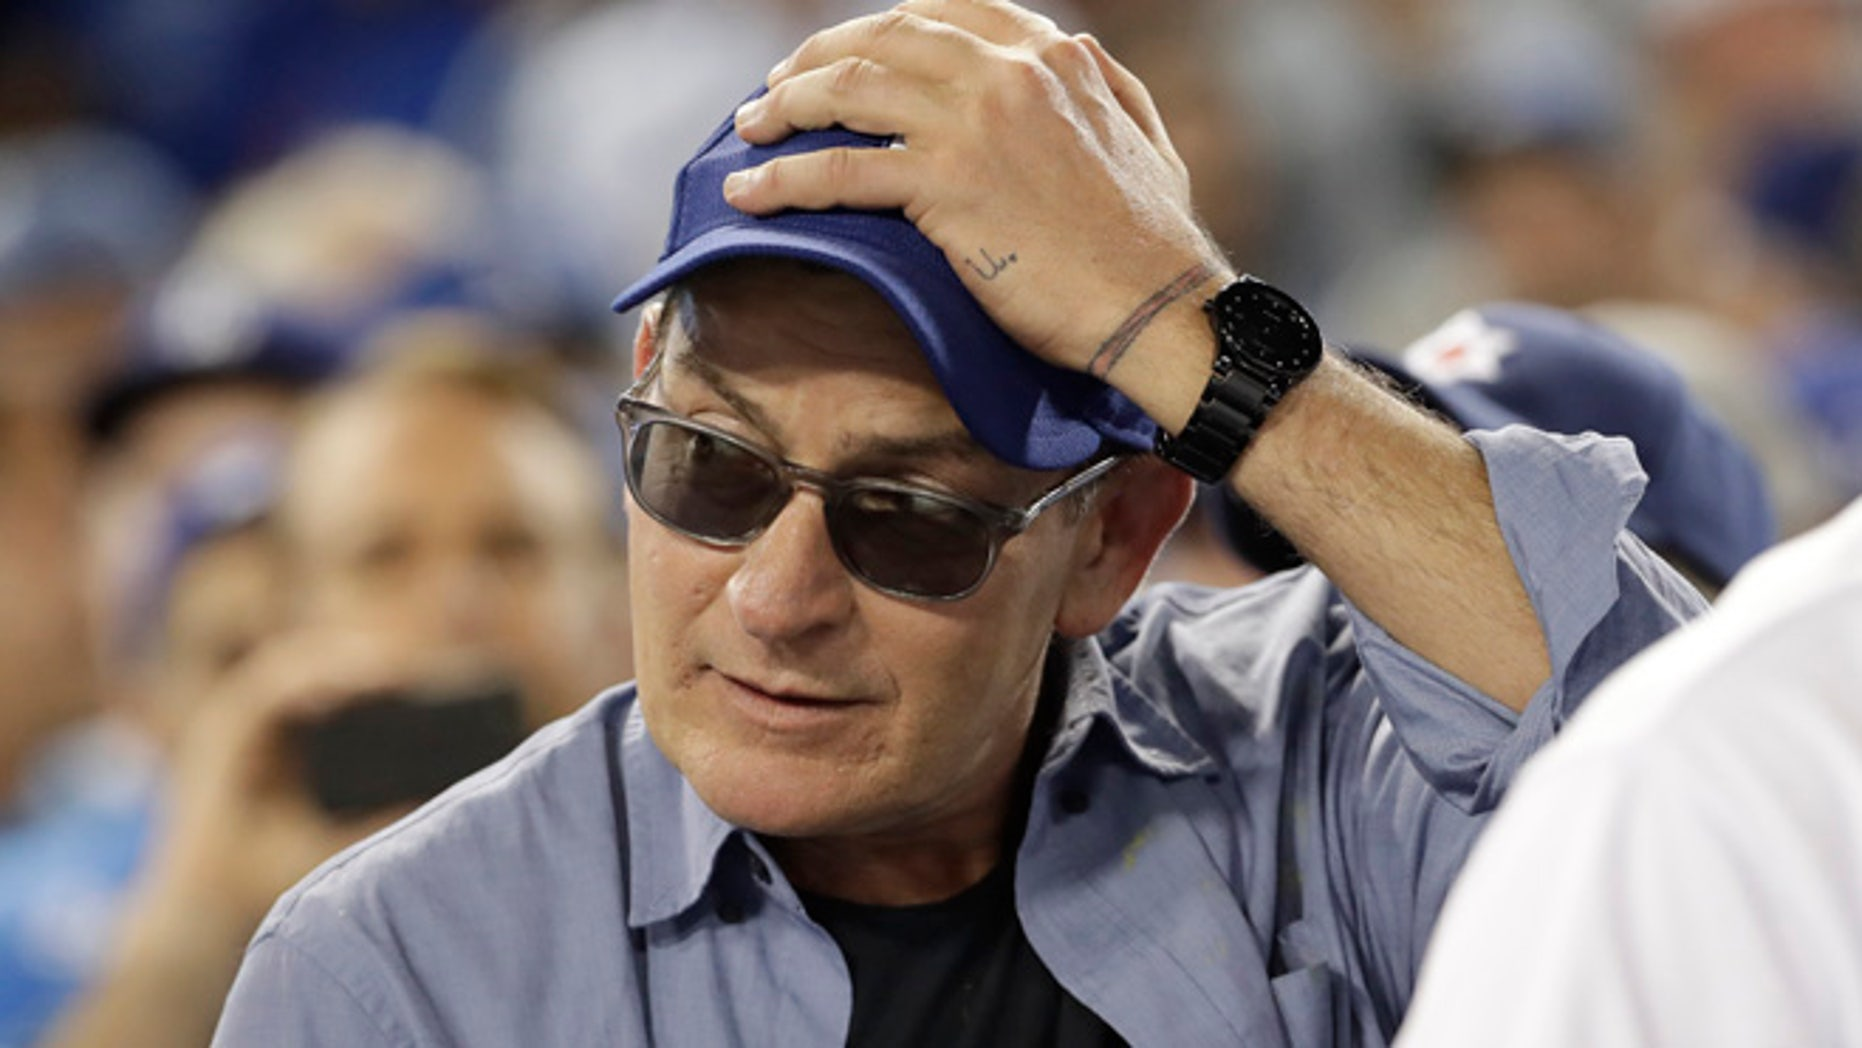 Actor Charlie Sheen reacts during the fifth inning of Game 4 of the National League baseball championship series between the Chicago Cubs and the Los Angeles Dodgers Wednesday, Oct. 19, 2016, in Los Angeles. (AP Photo/David J. Phillip)